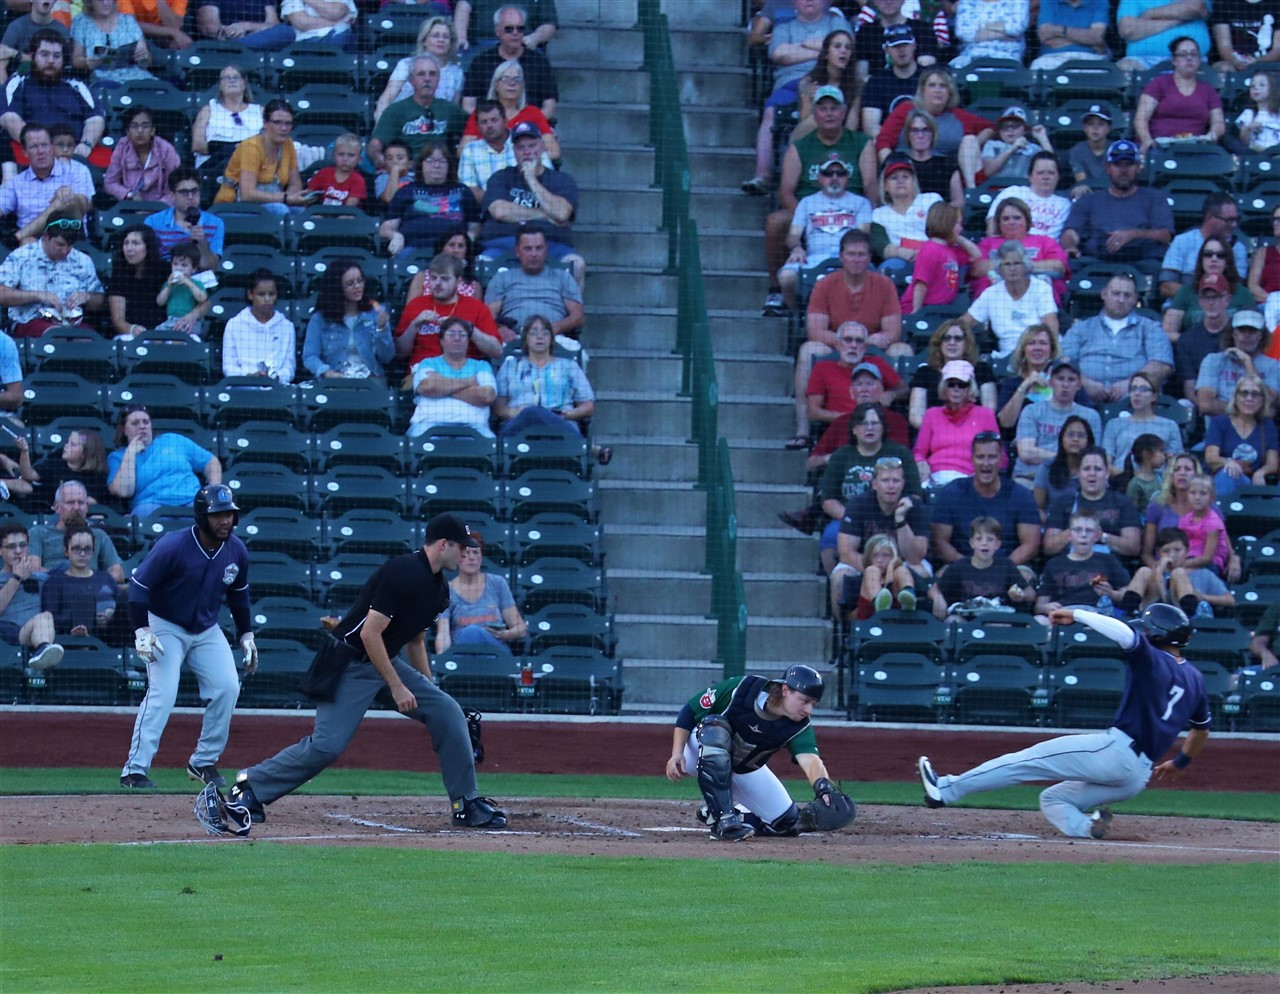 2018 08 31 531 Ft Wayne IN Parkview Field.jpg